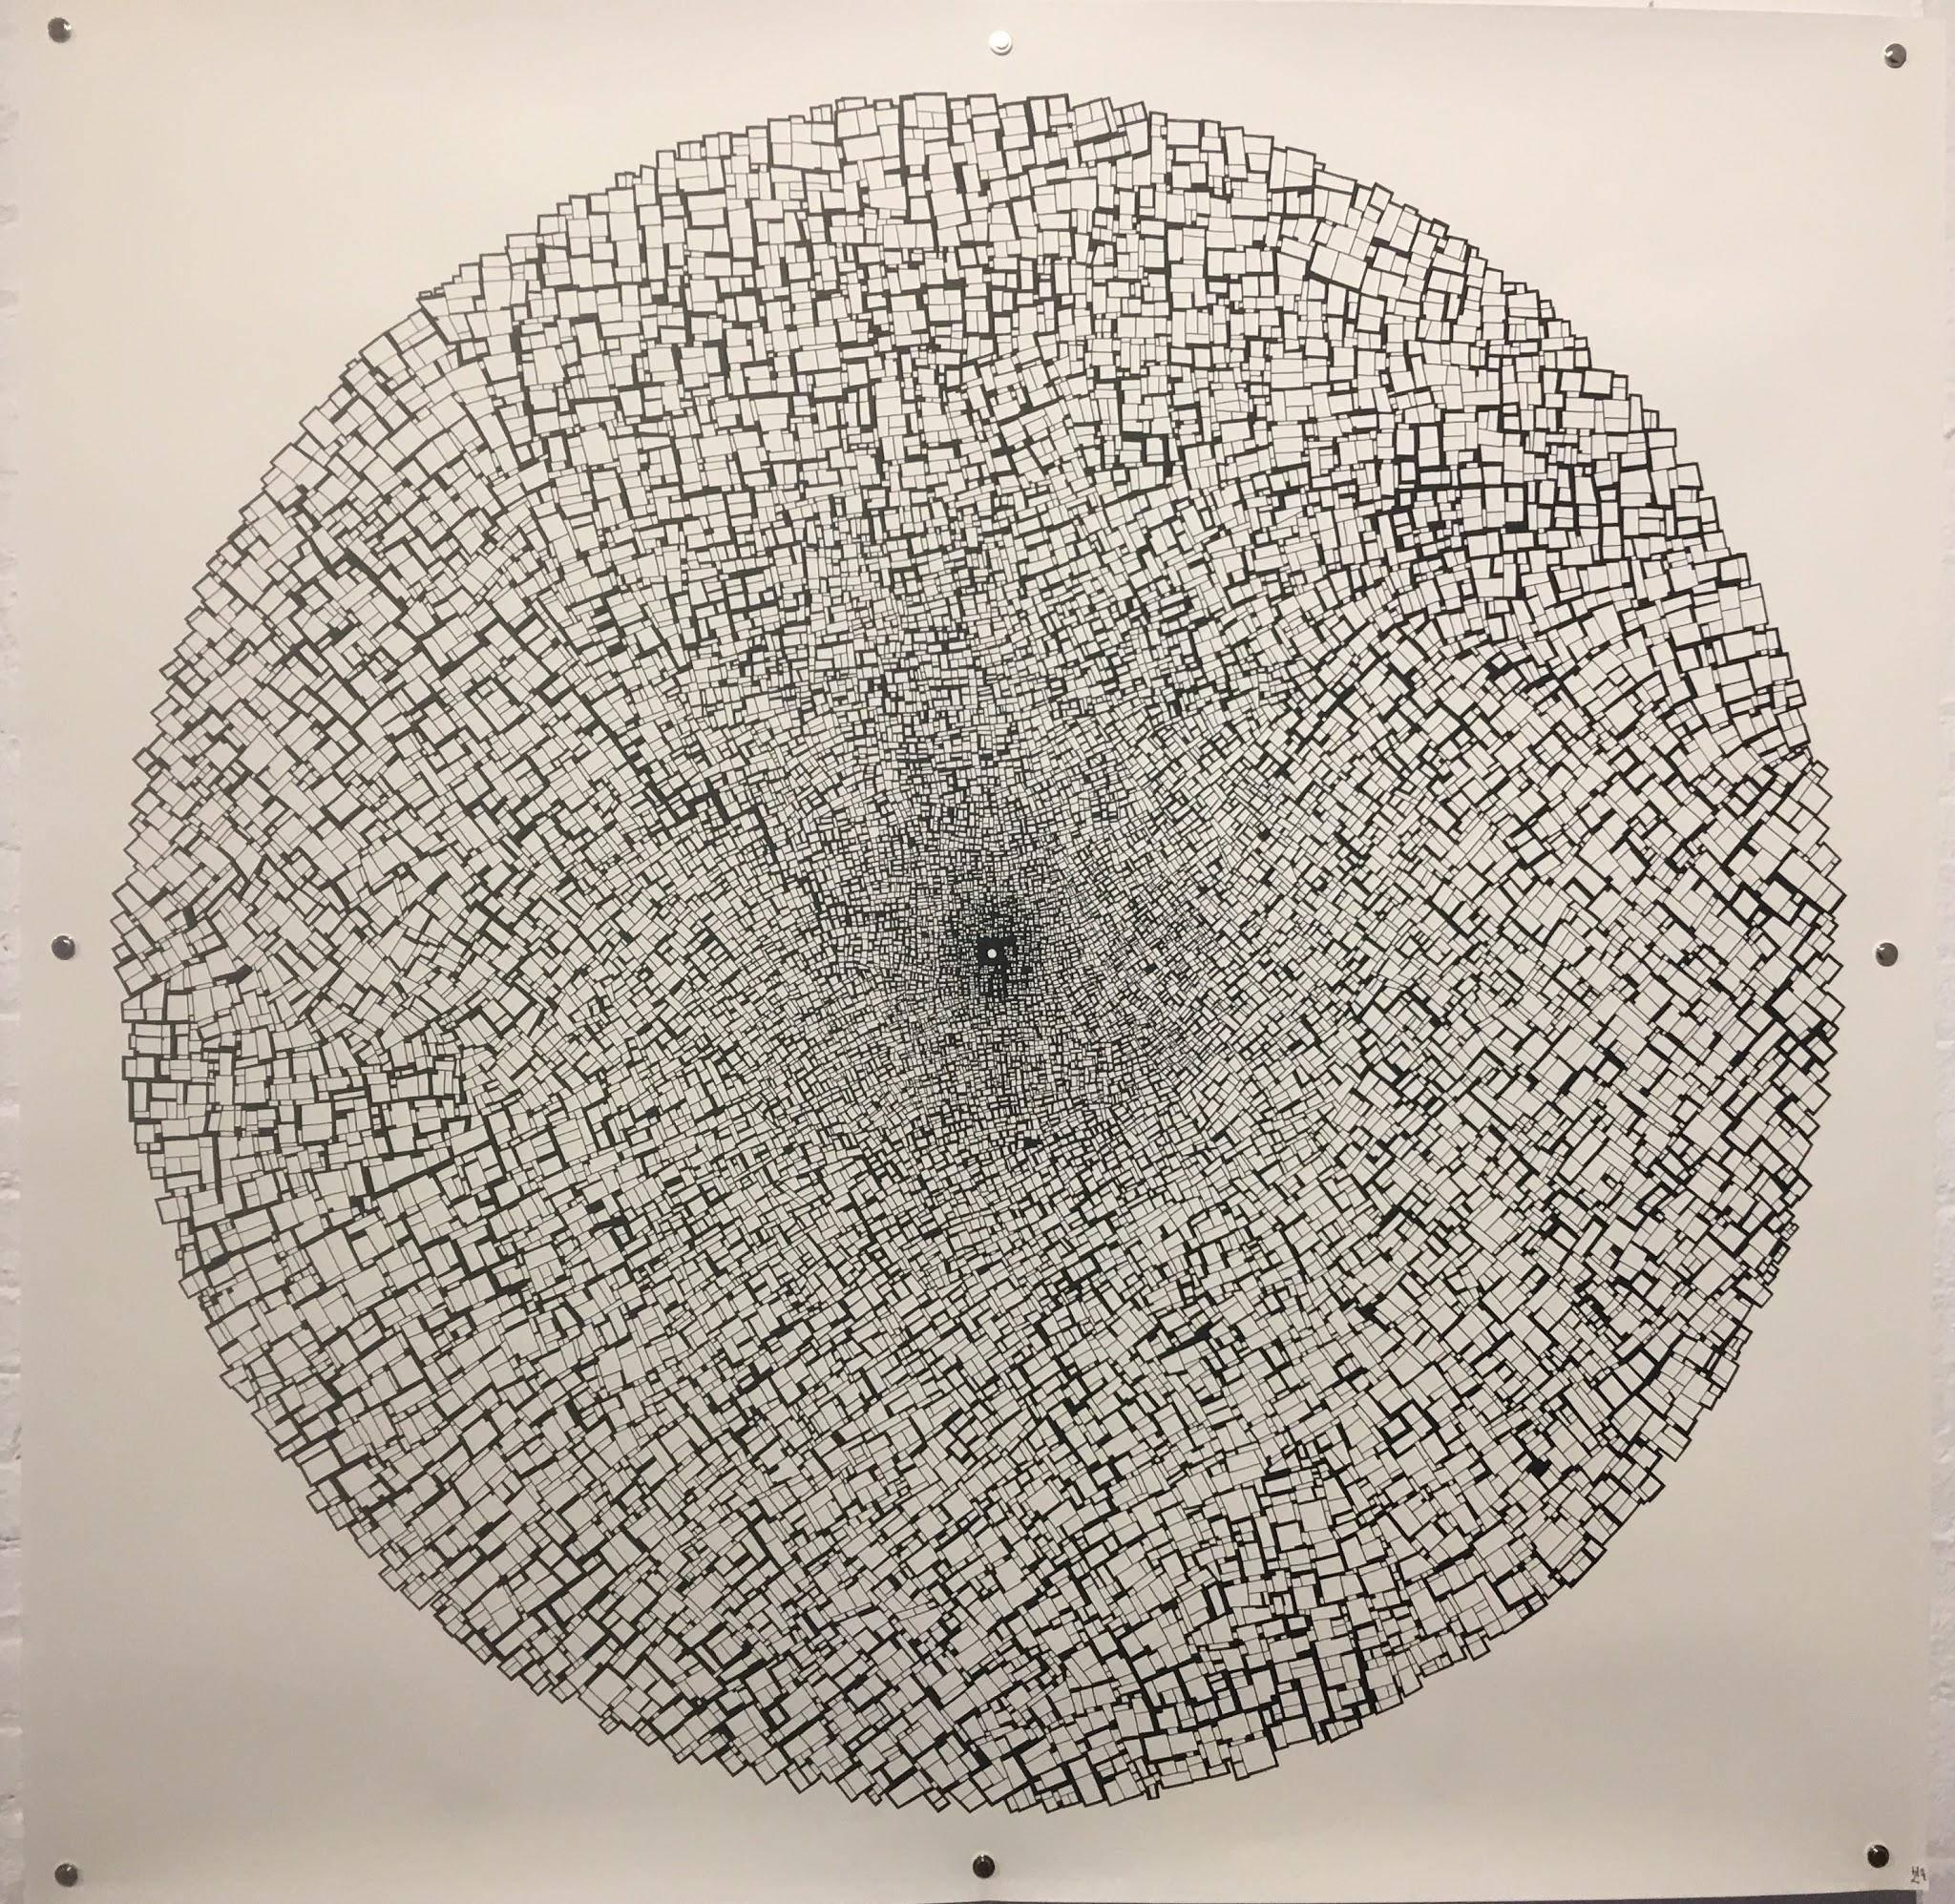 The Big City, Halsey Chait, Abstract India Ink Drawing, Circle, Black, White